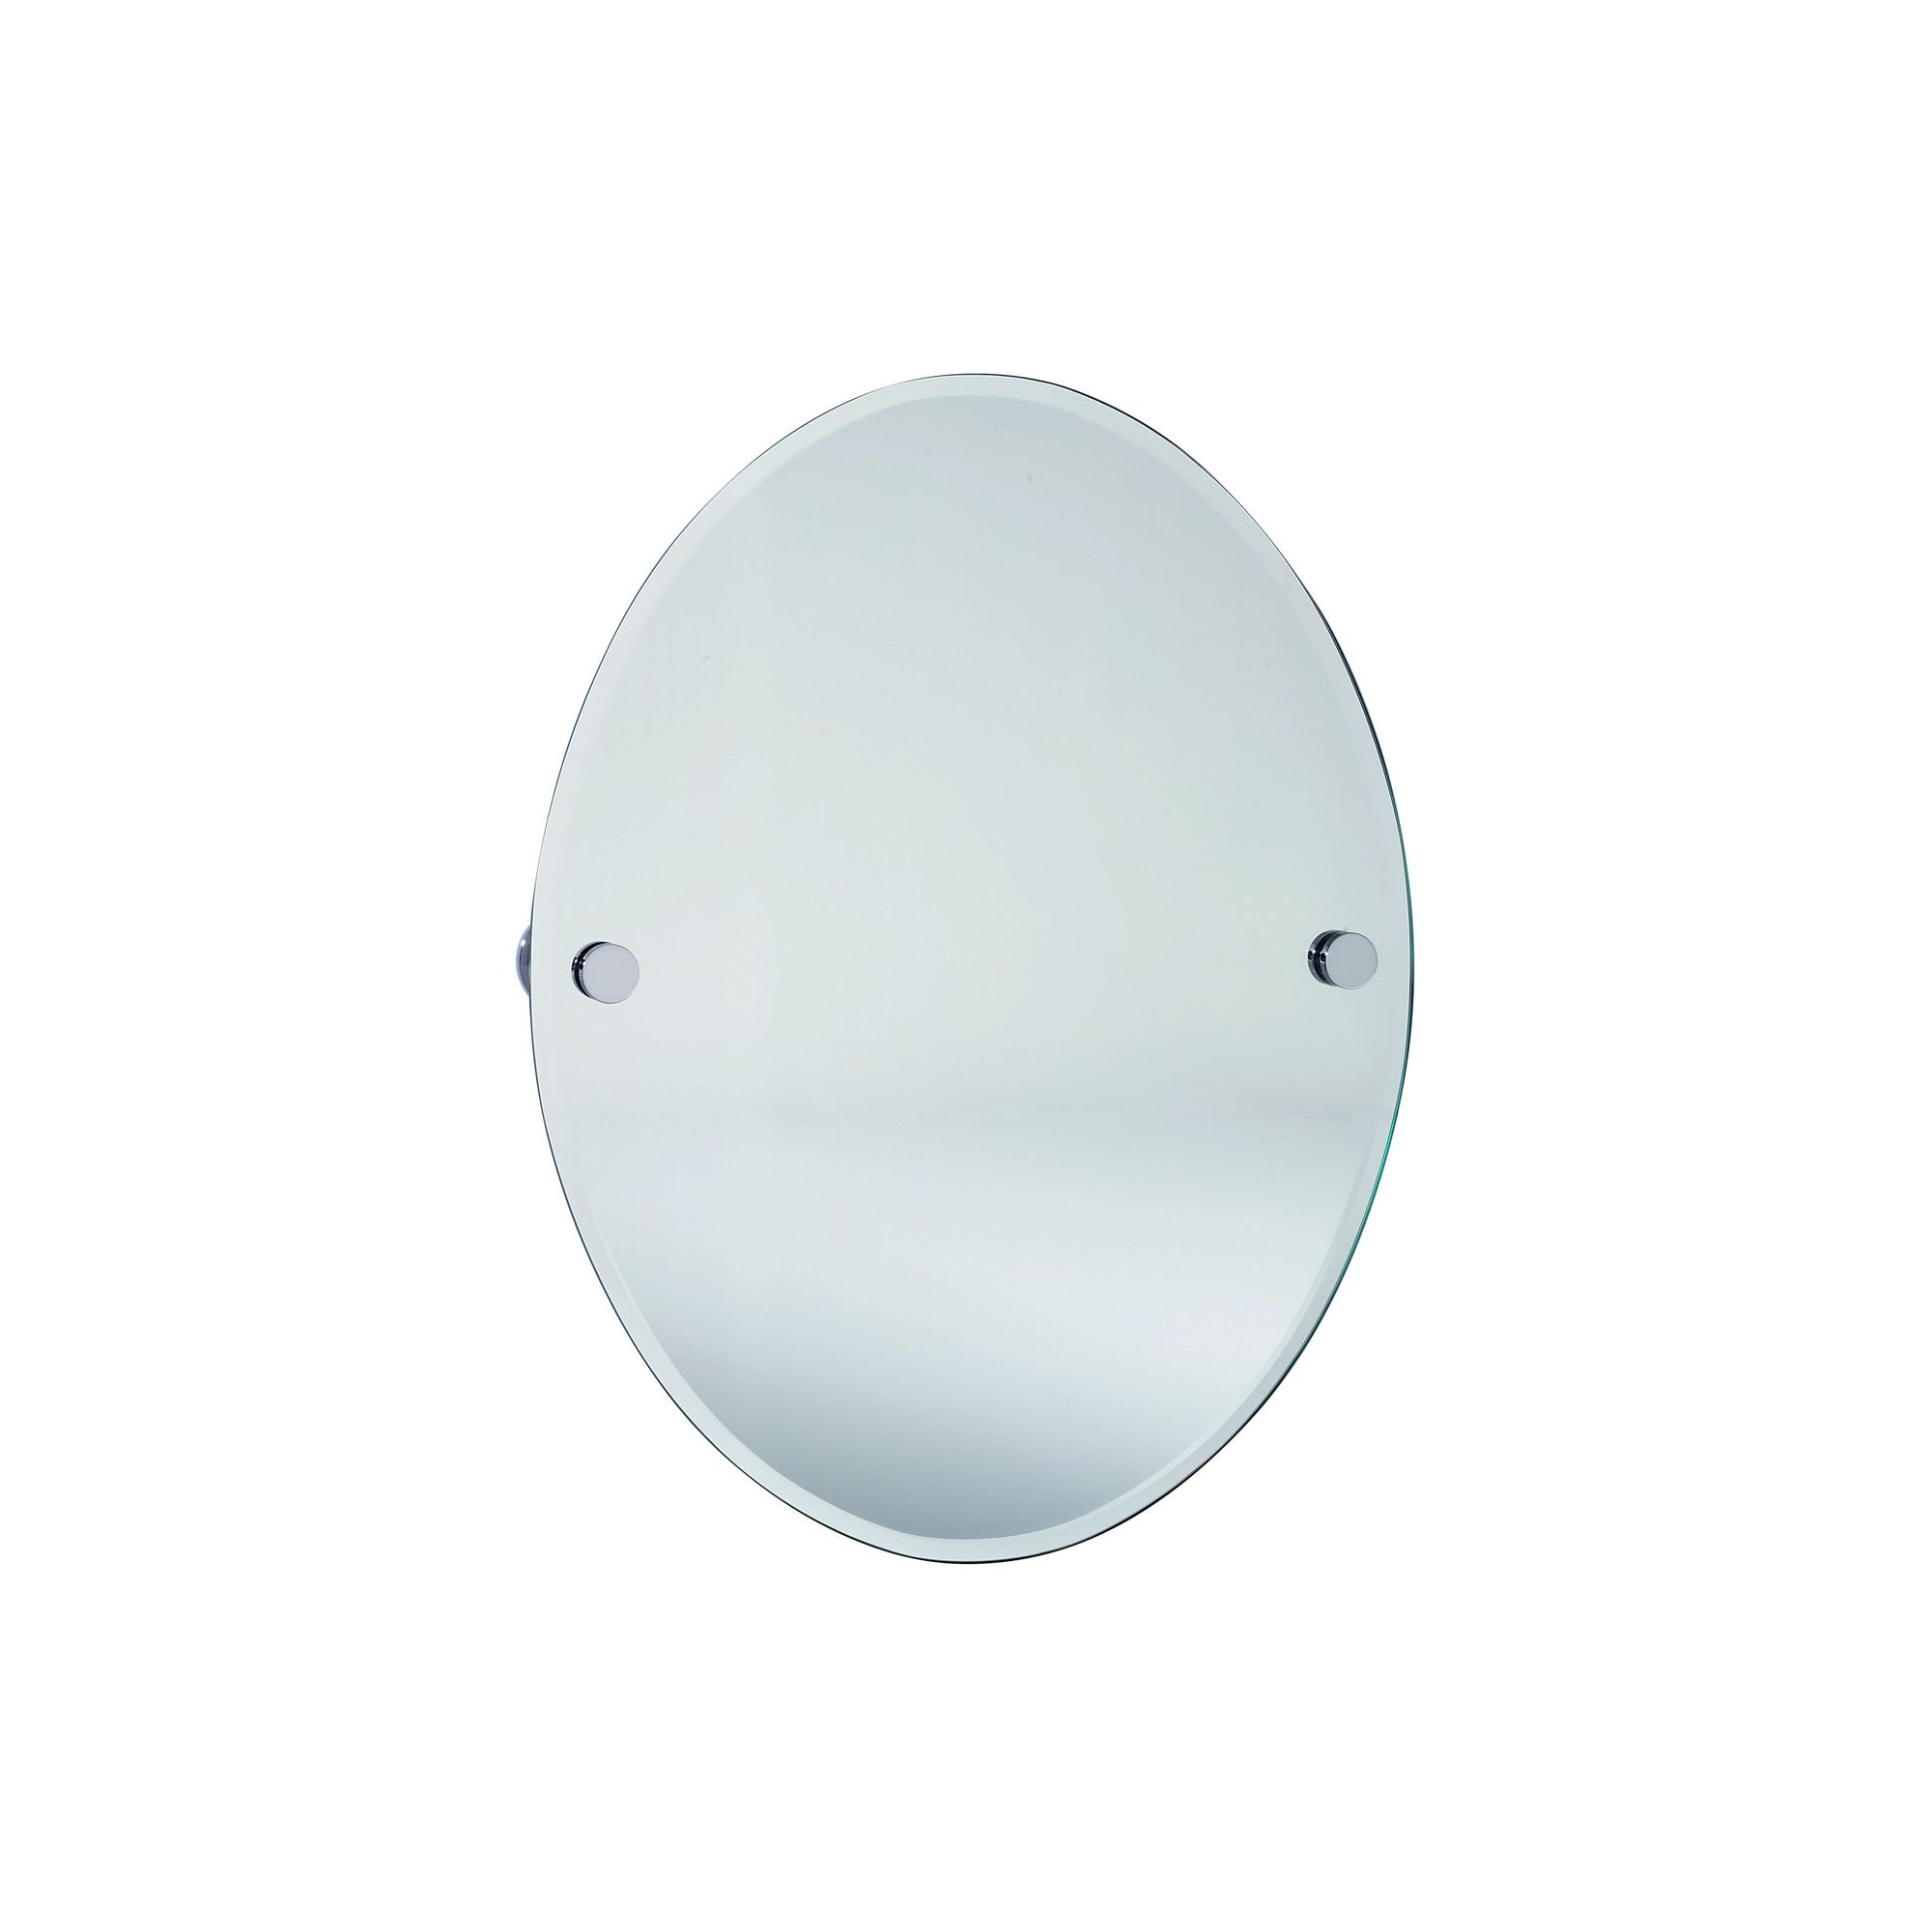 Smedbo Loft Oval Bathroom Mirror - Brushed Chrome at Tesco Direct